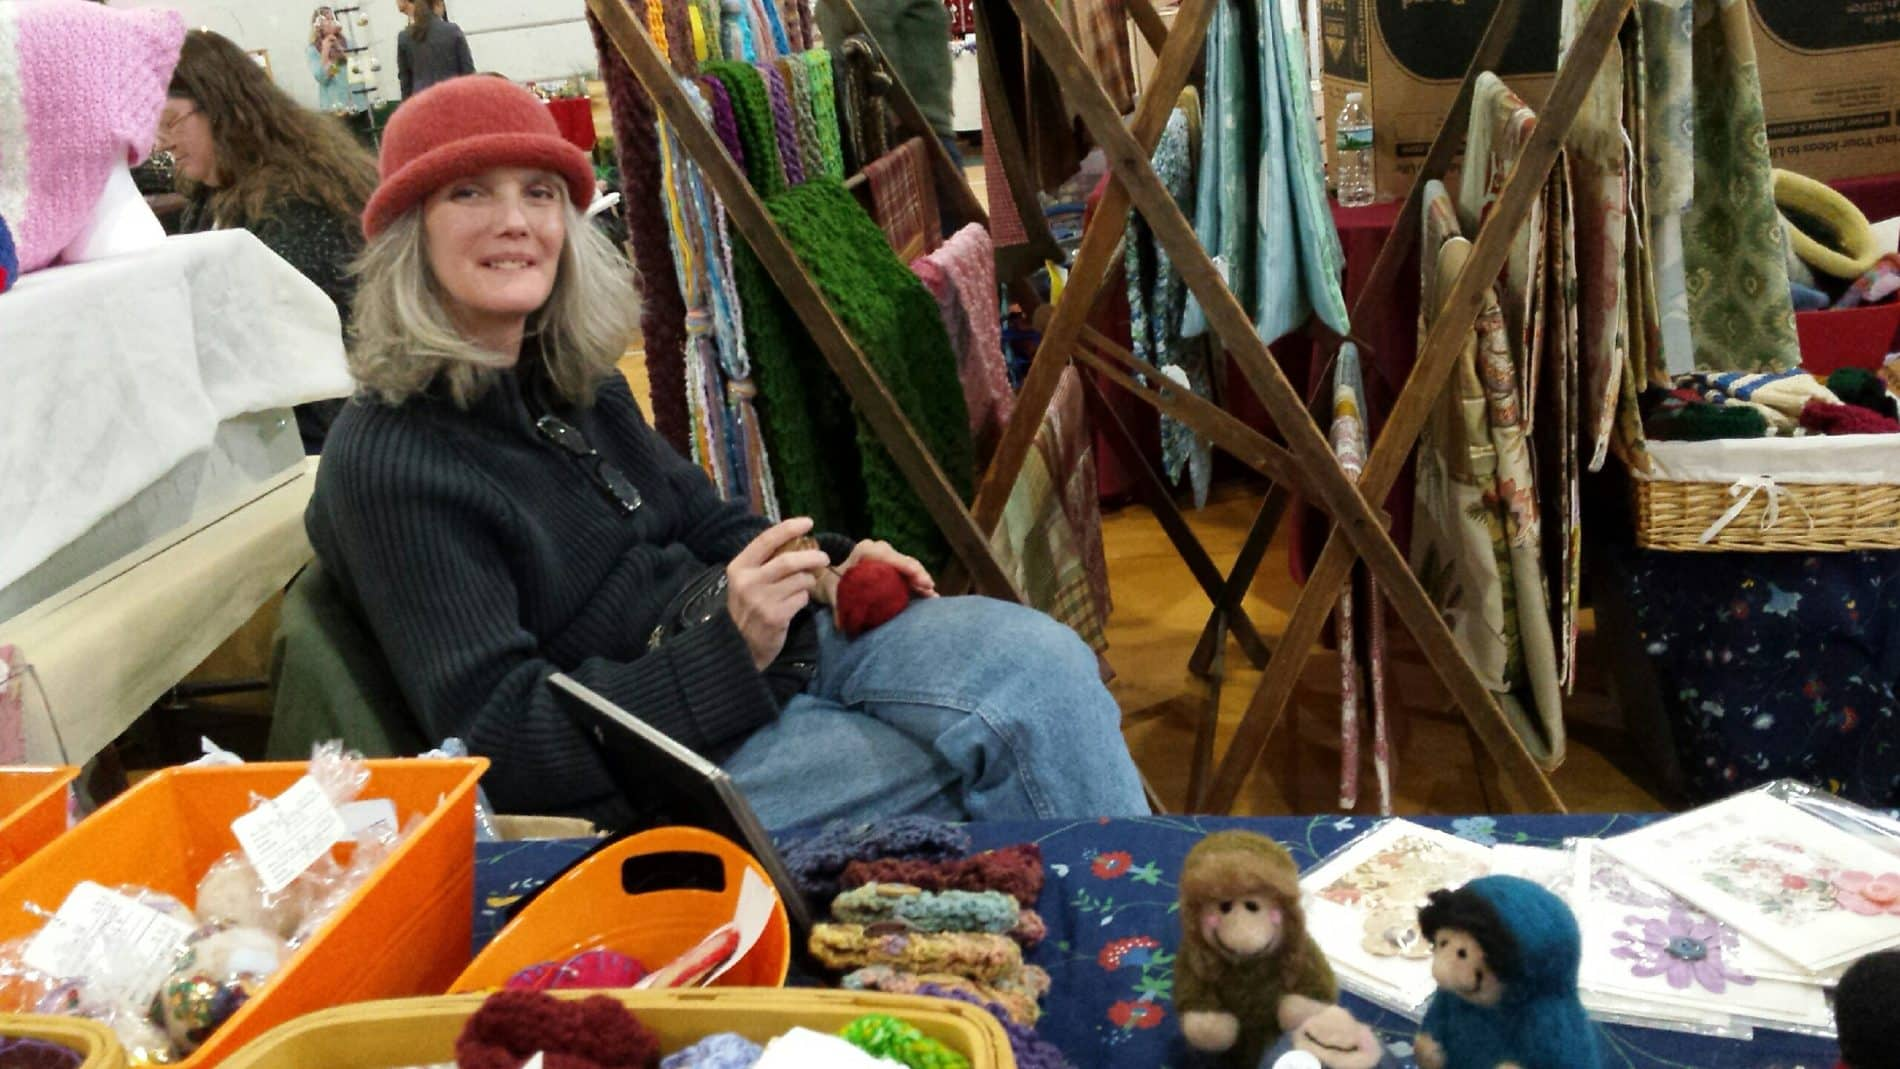 A crafter sits surrounded by her wares as she needle felts